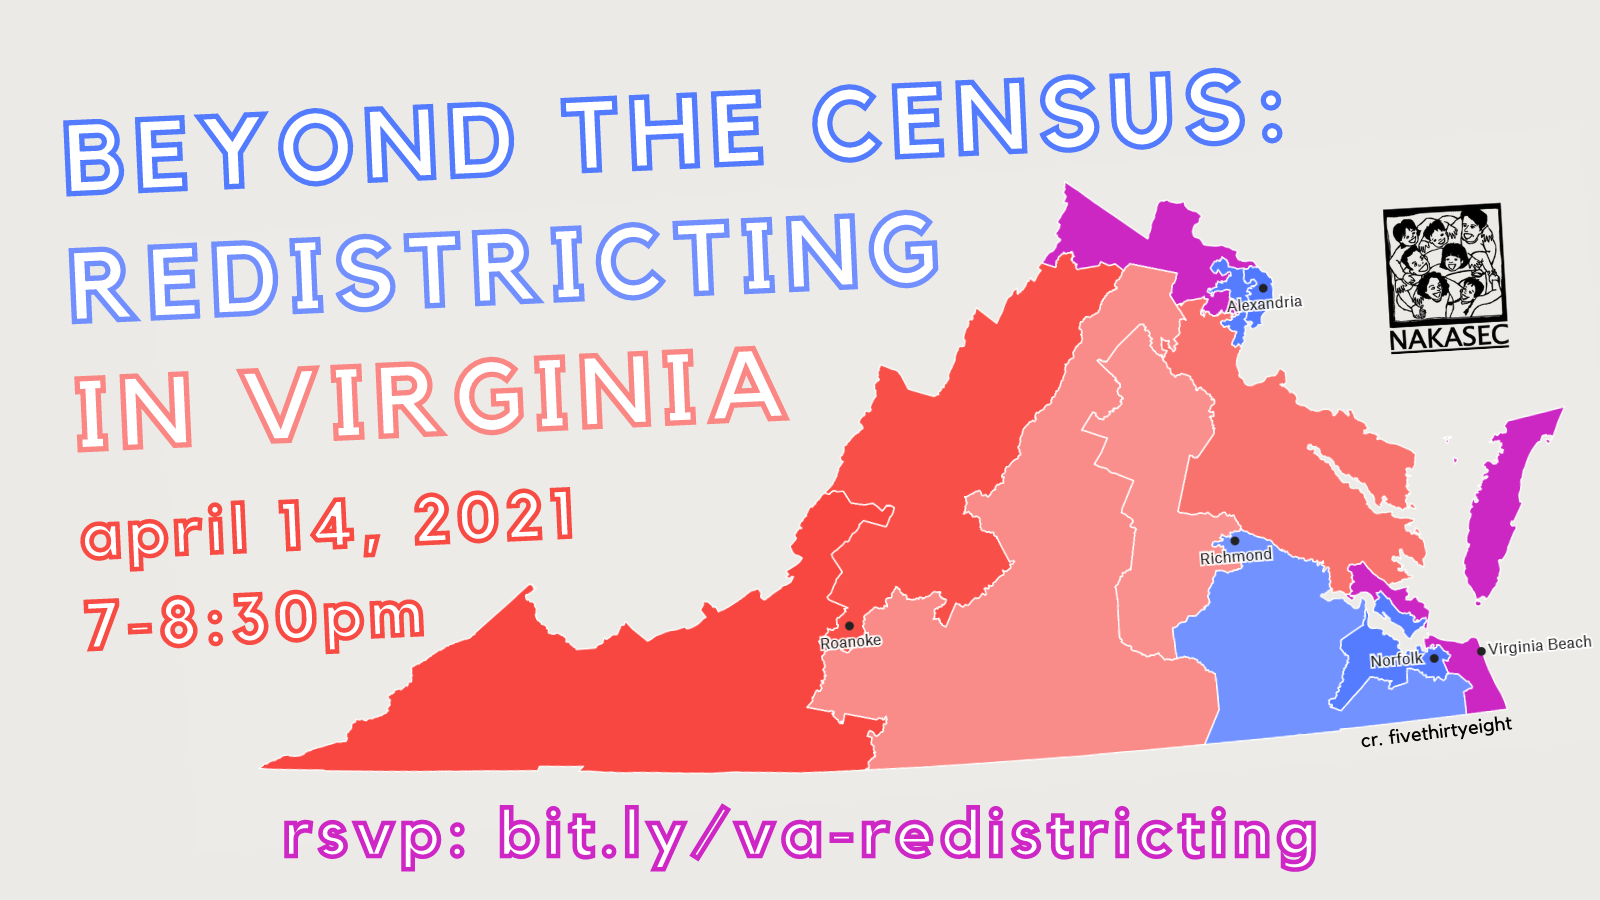 Beyond the Census: Redistricting in Virginia on April 14, 2021 at 7-8:30pm. RSVP: bit.ly/va-redistricting